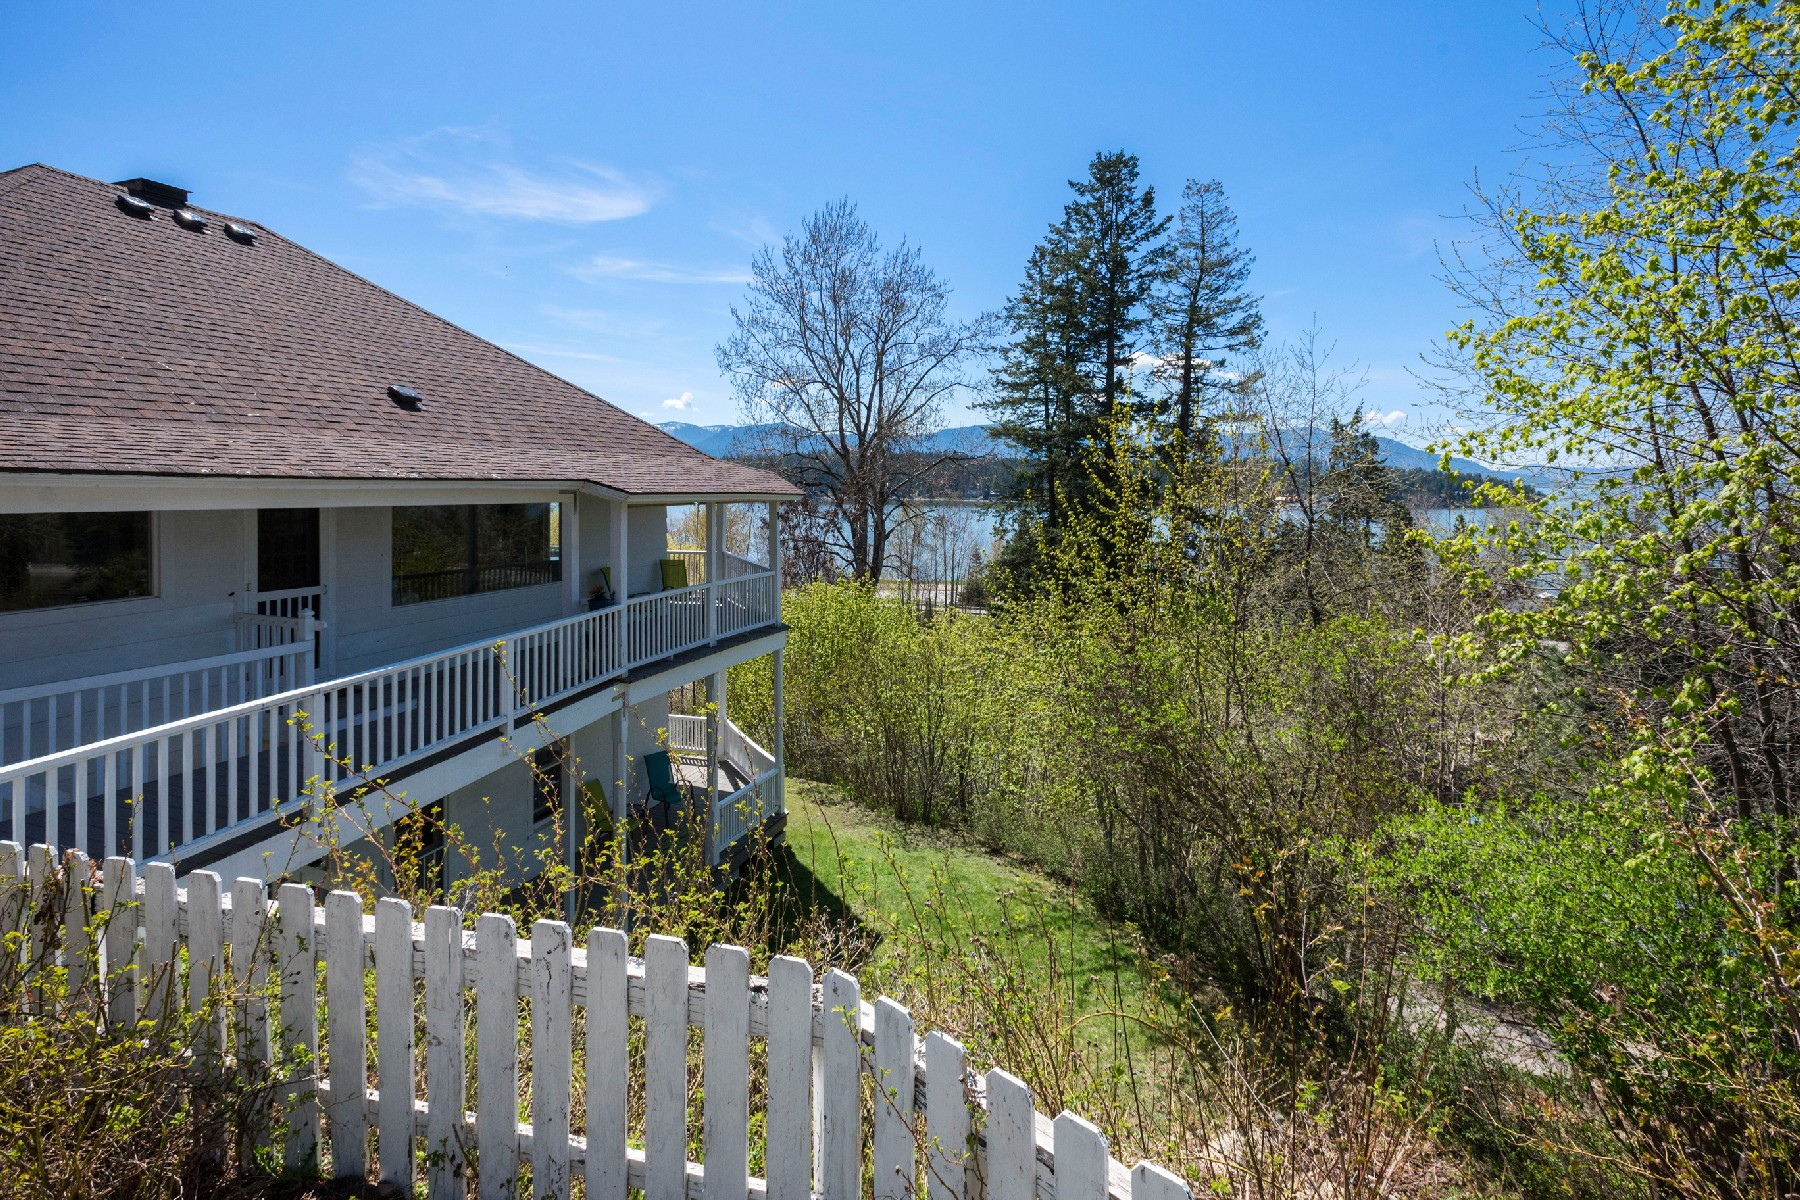 Single Family Home for Active at Amazing View Home in Hope 516 Big Hill Road Hope, Idaho 83836 United States